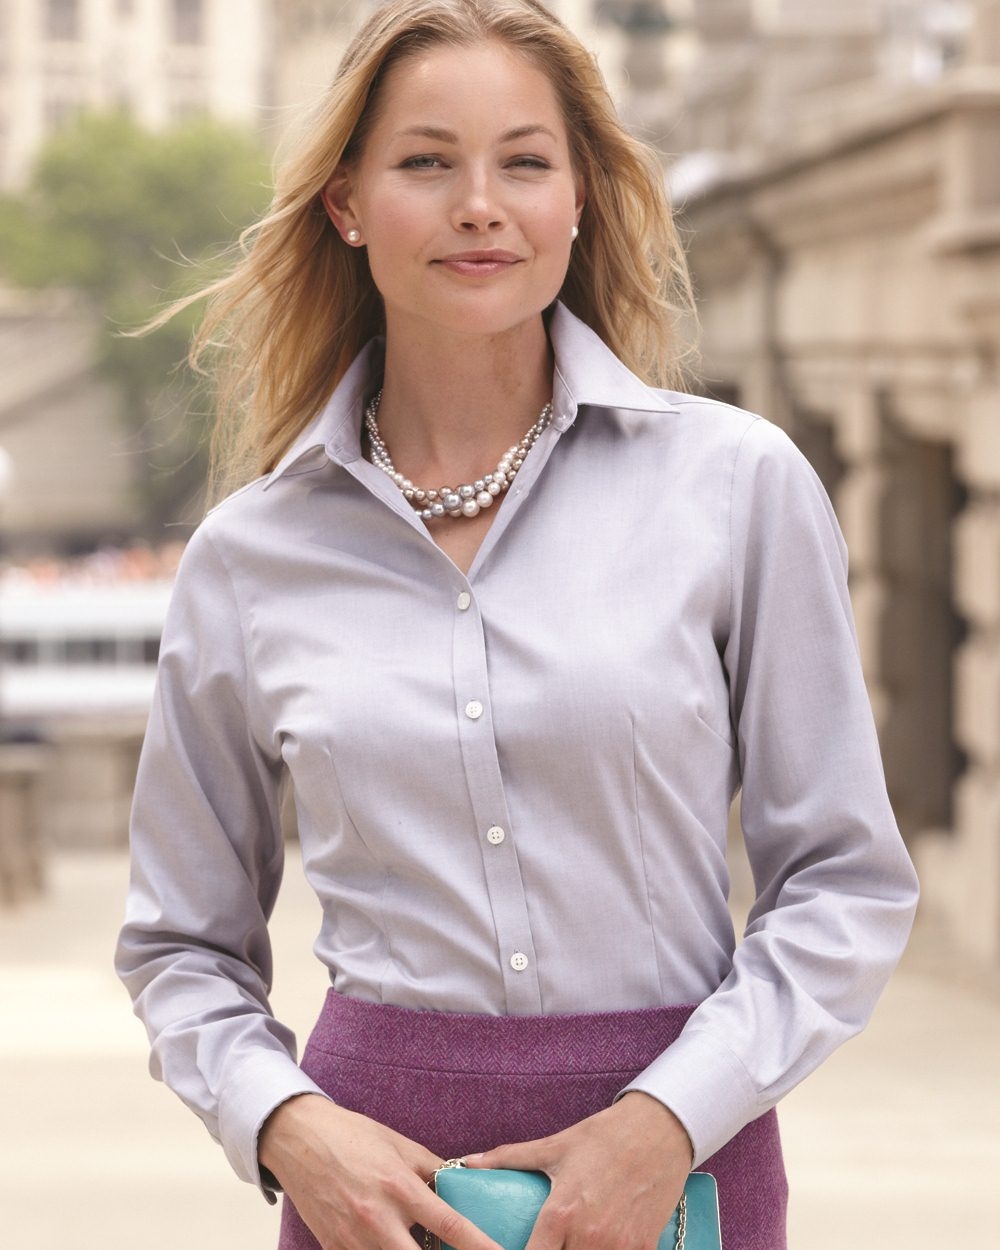 Image result for button up shirts for women